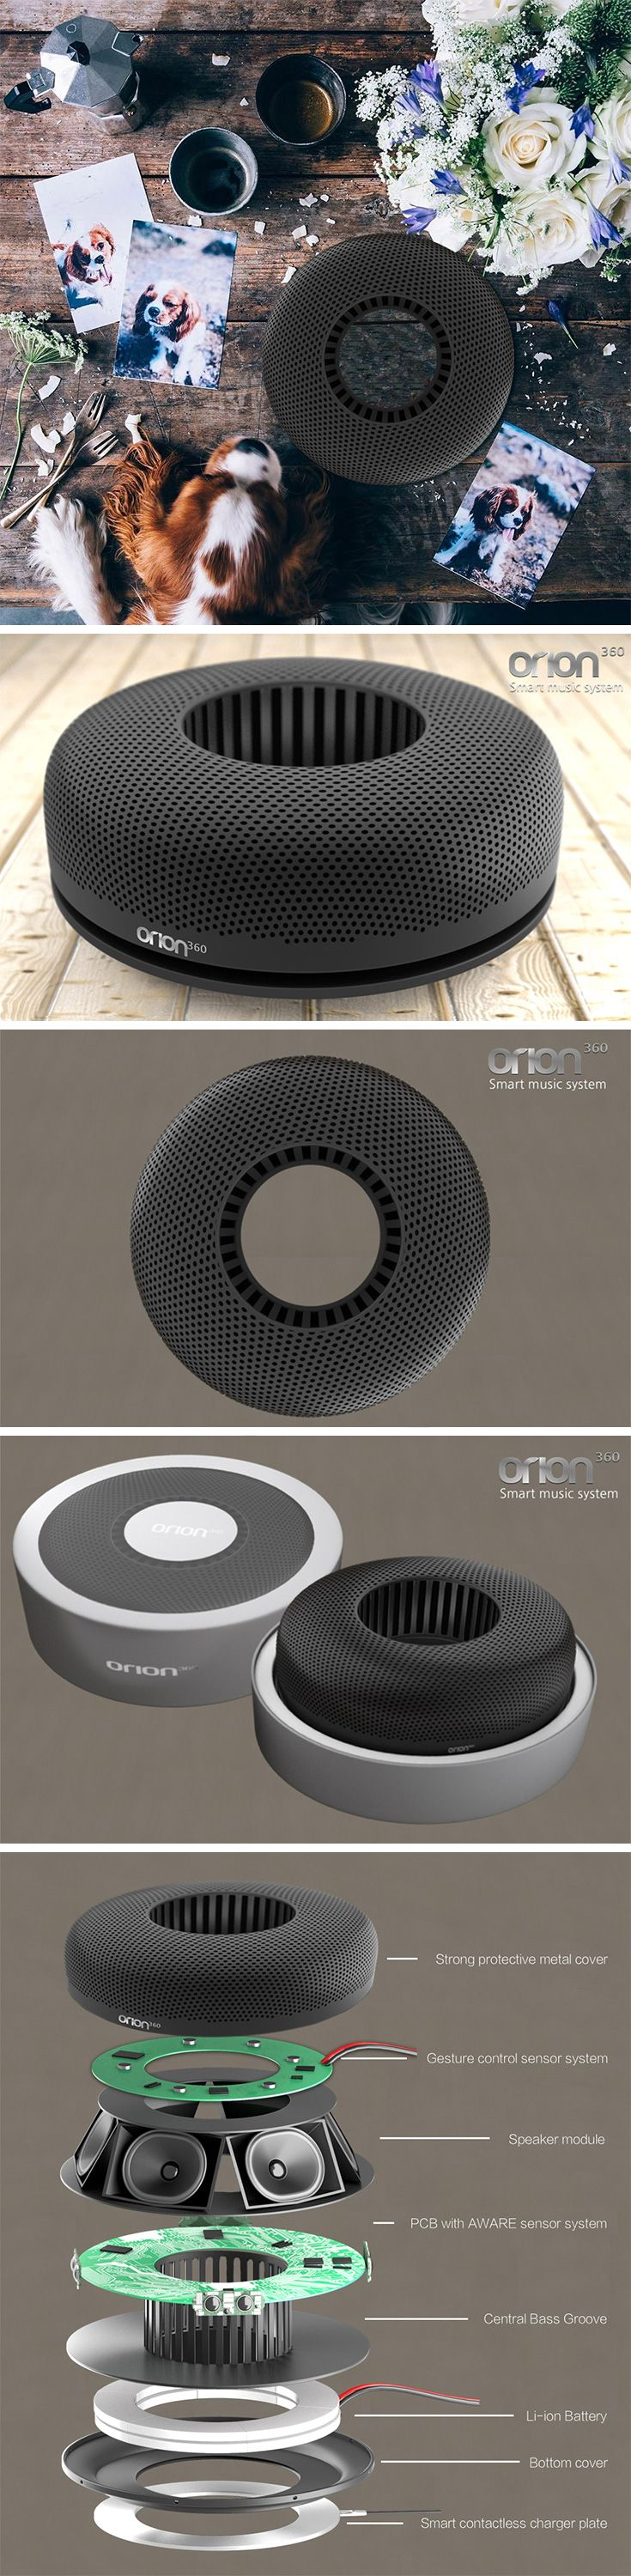 The donut shape of the ORION360 speaker isn't only adorable, it's also highly functional, providing 360 degrees of high definition audio you can take anywhere! Free of any buttons or confusing controls, the ring also serves as a gestural interface where users can swipe to skip, draw a circle to adjust volume, or hover to play/pause… just incorporate gestures into your dance moves!